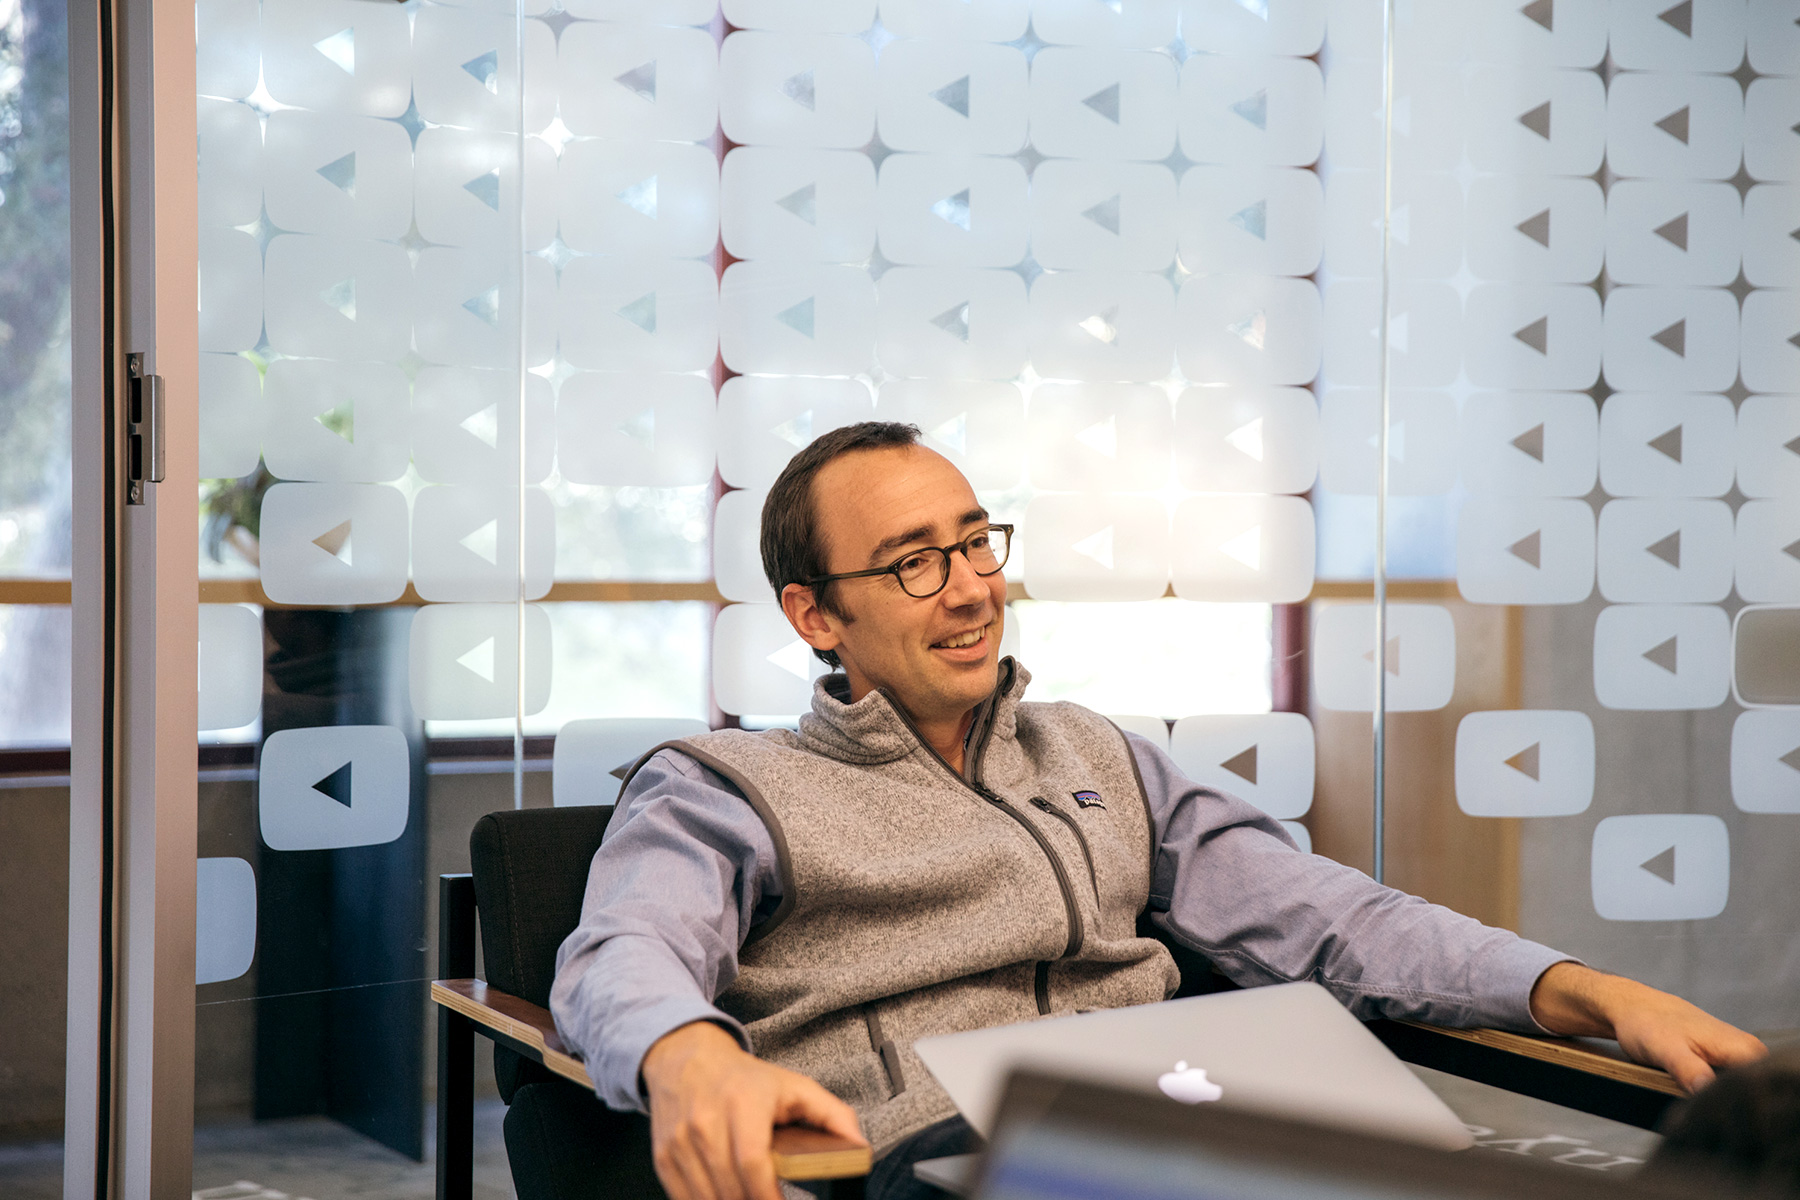 A man in a conference room with the YouTube logo on the wall, smiling and sitting in a chair.